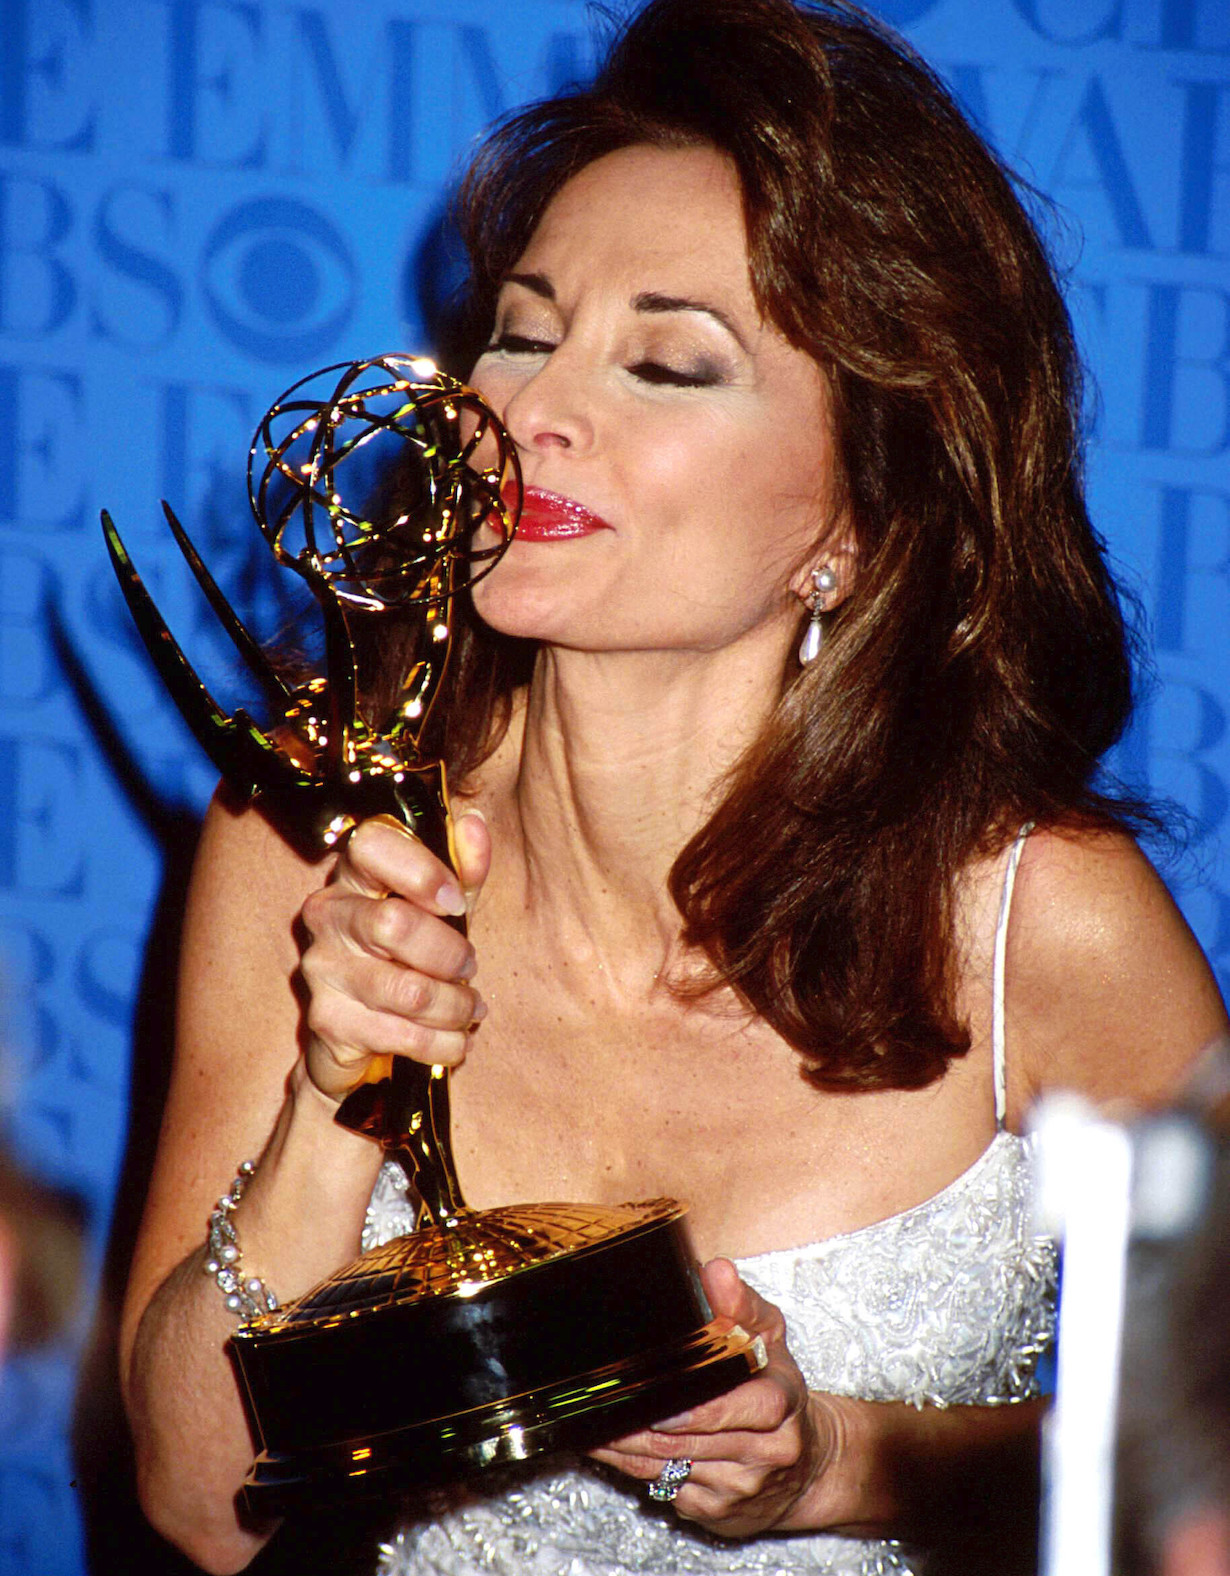 Susan Lucci at the 26Th Daytime Emmy Awards win At Madison Square Garden Theatre In New York City 5-21-1999 Credit: 2084426Globe Photos/MediaPunch /IPX